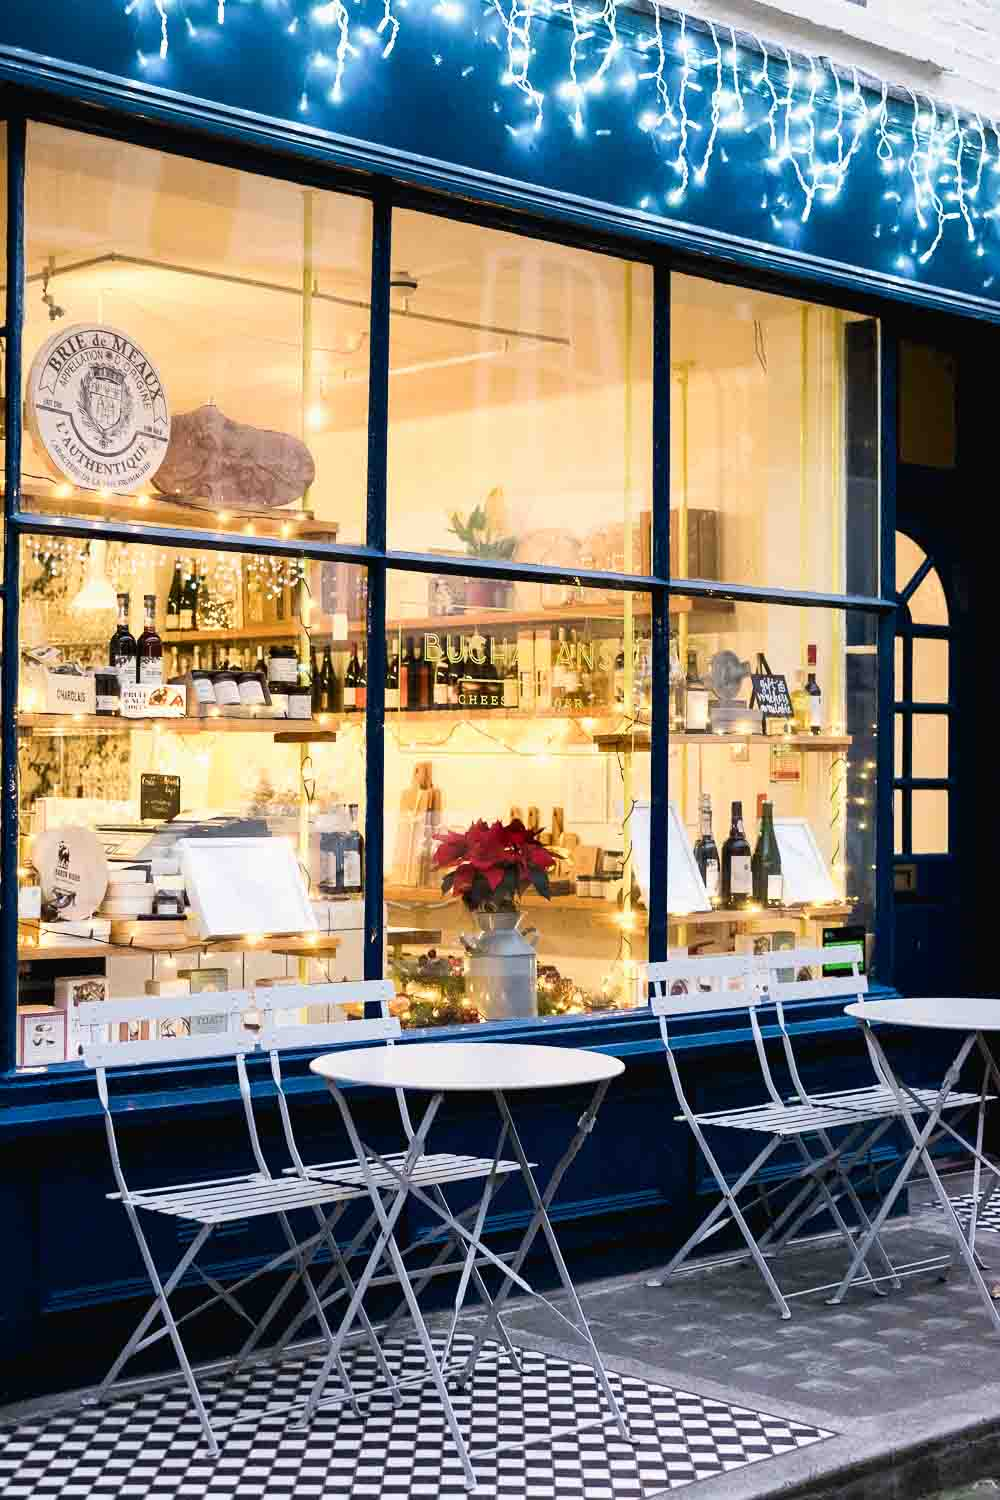 Buchanan's Cheesemonger in Connaught Village in London